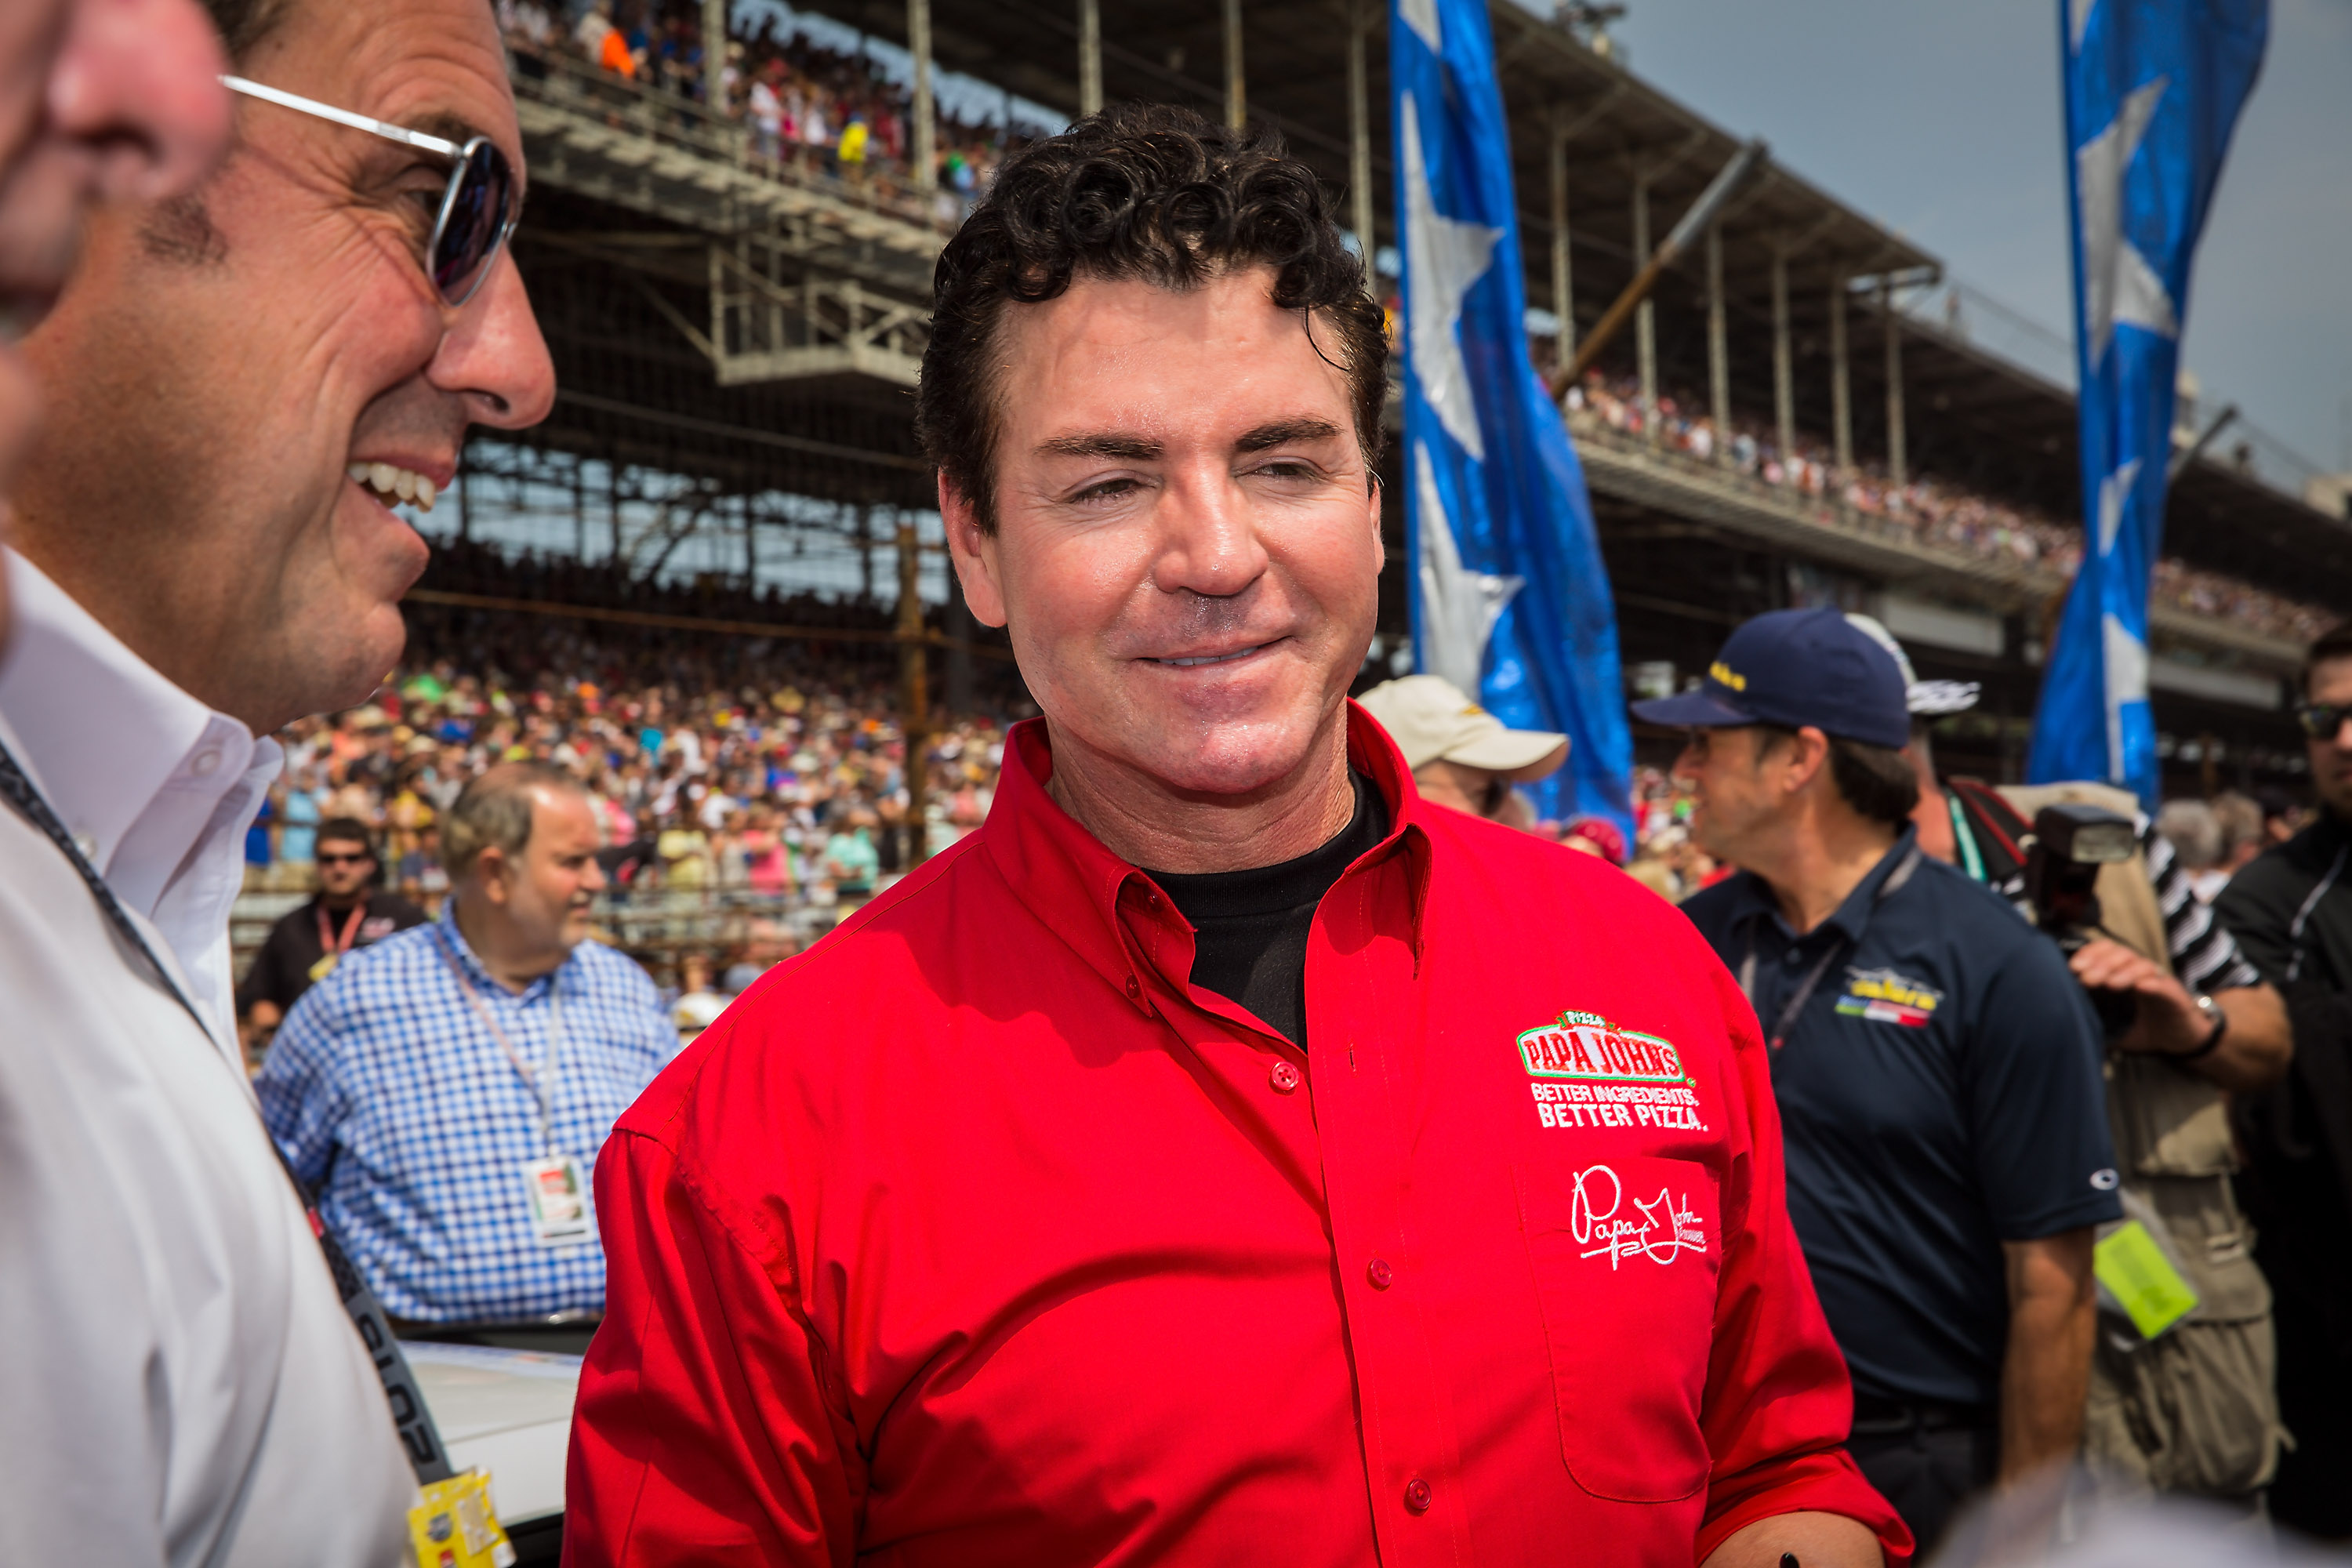 INDIANAPOLIS, IN - MAY 24: Papa John's founder and CEO John Schnatter attends the Indy 500 on May 23, 2015 in Indianapolis, Indiana. (Photo by Michael Hickey/Getty Images)